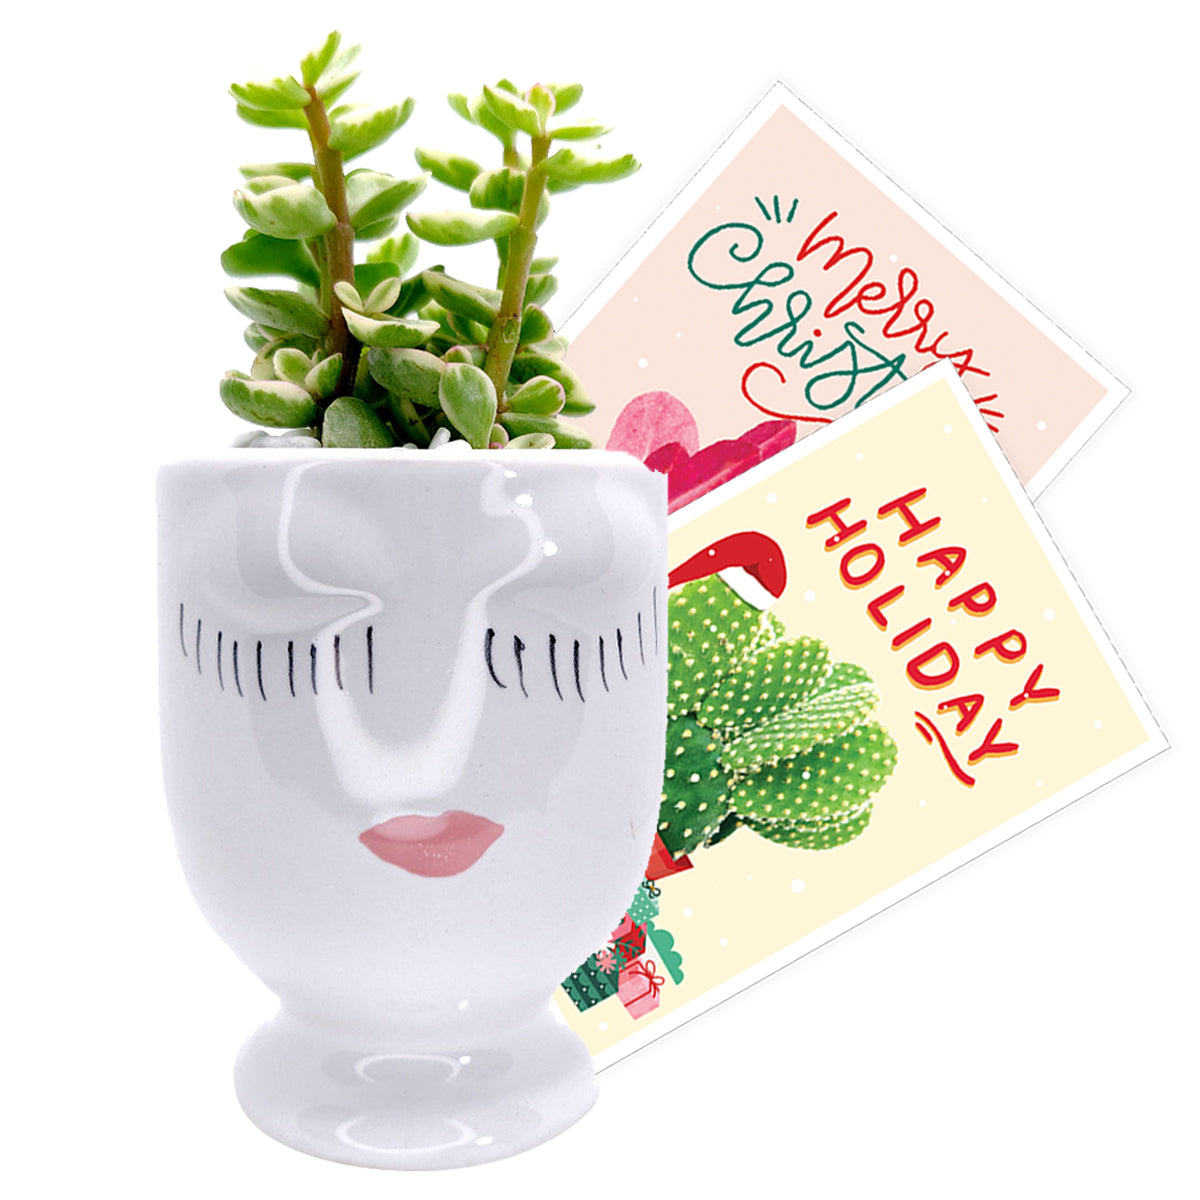 Holiday Pot Collection for sale, Claire pot for sale, unique pots for succulent and cactus, succulent pot decor, succulent pot gift ideas, Holiday decoration for sale, Designed Ceramic pot for succulent and cactus, small flower pot, Succulent pot decor ideas, succulent gift ideas